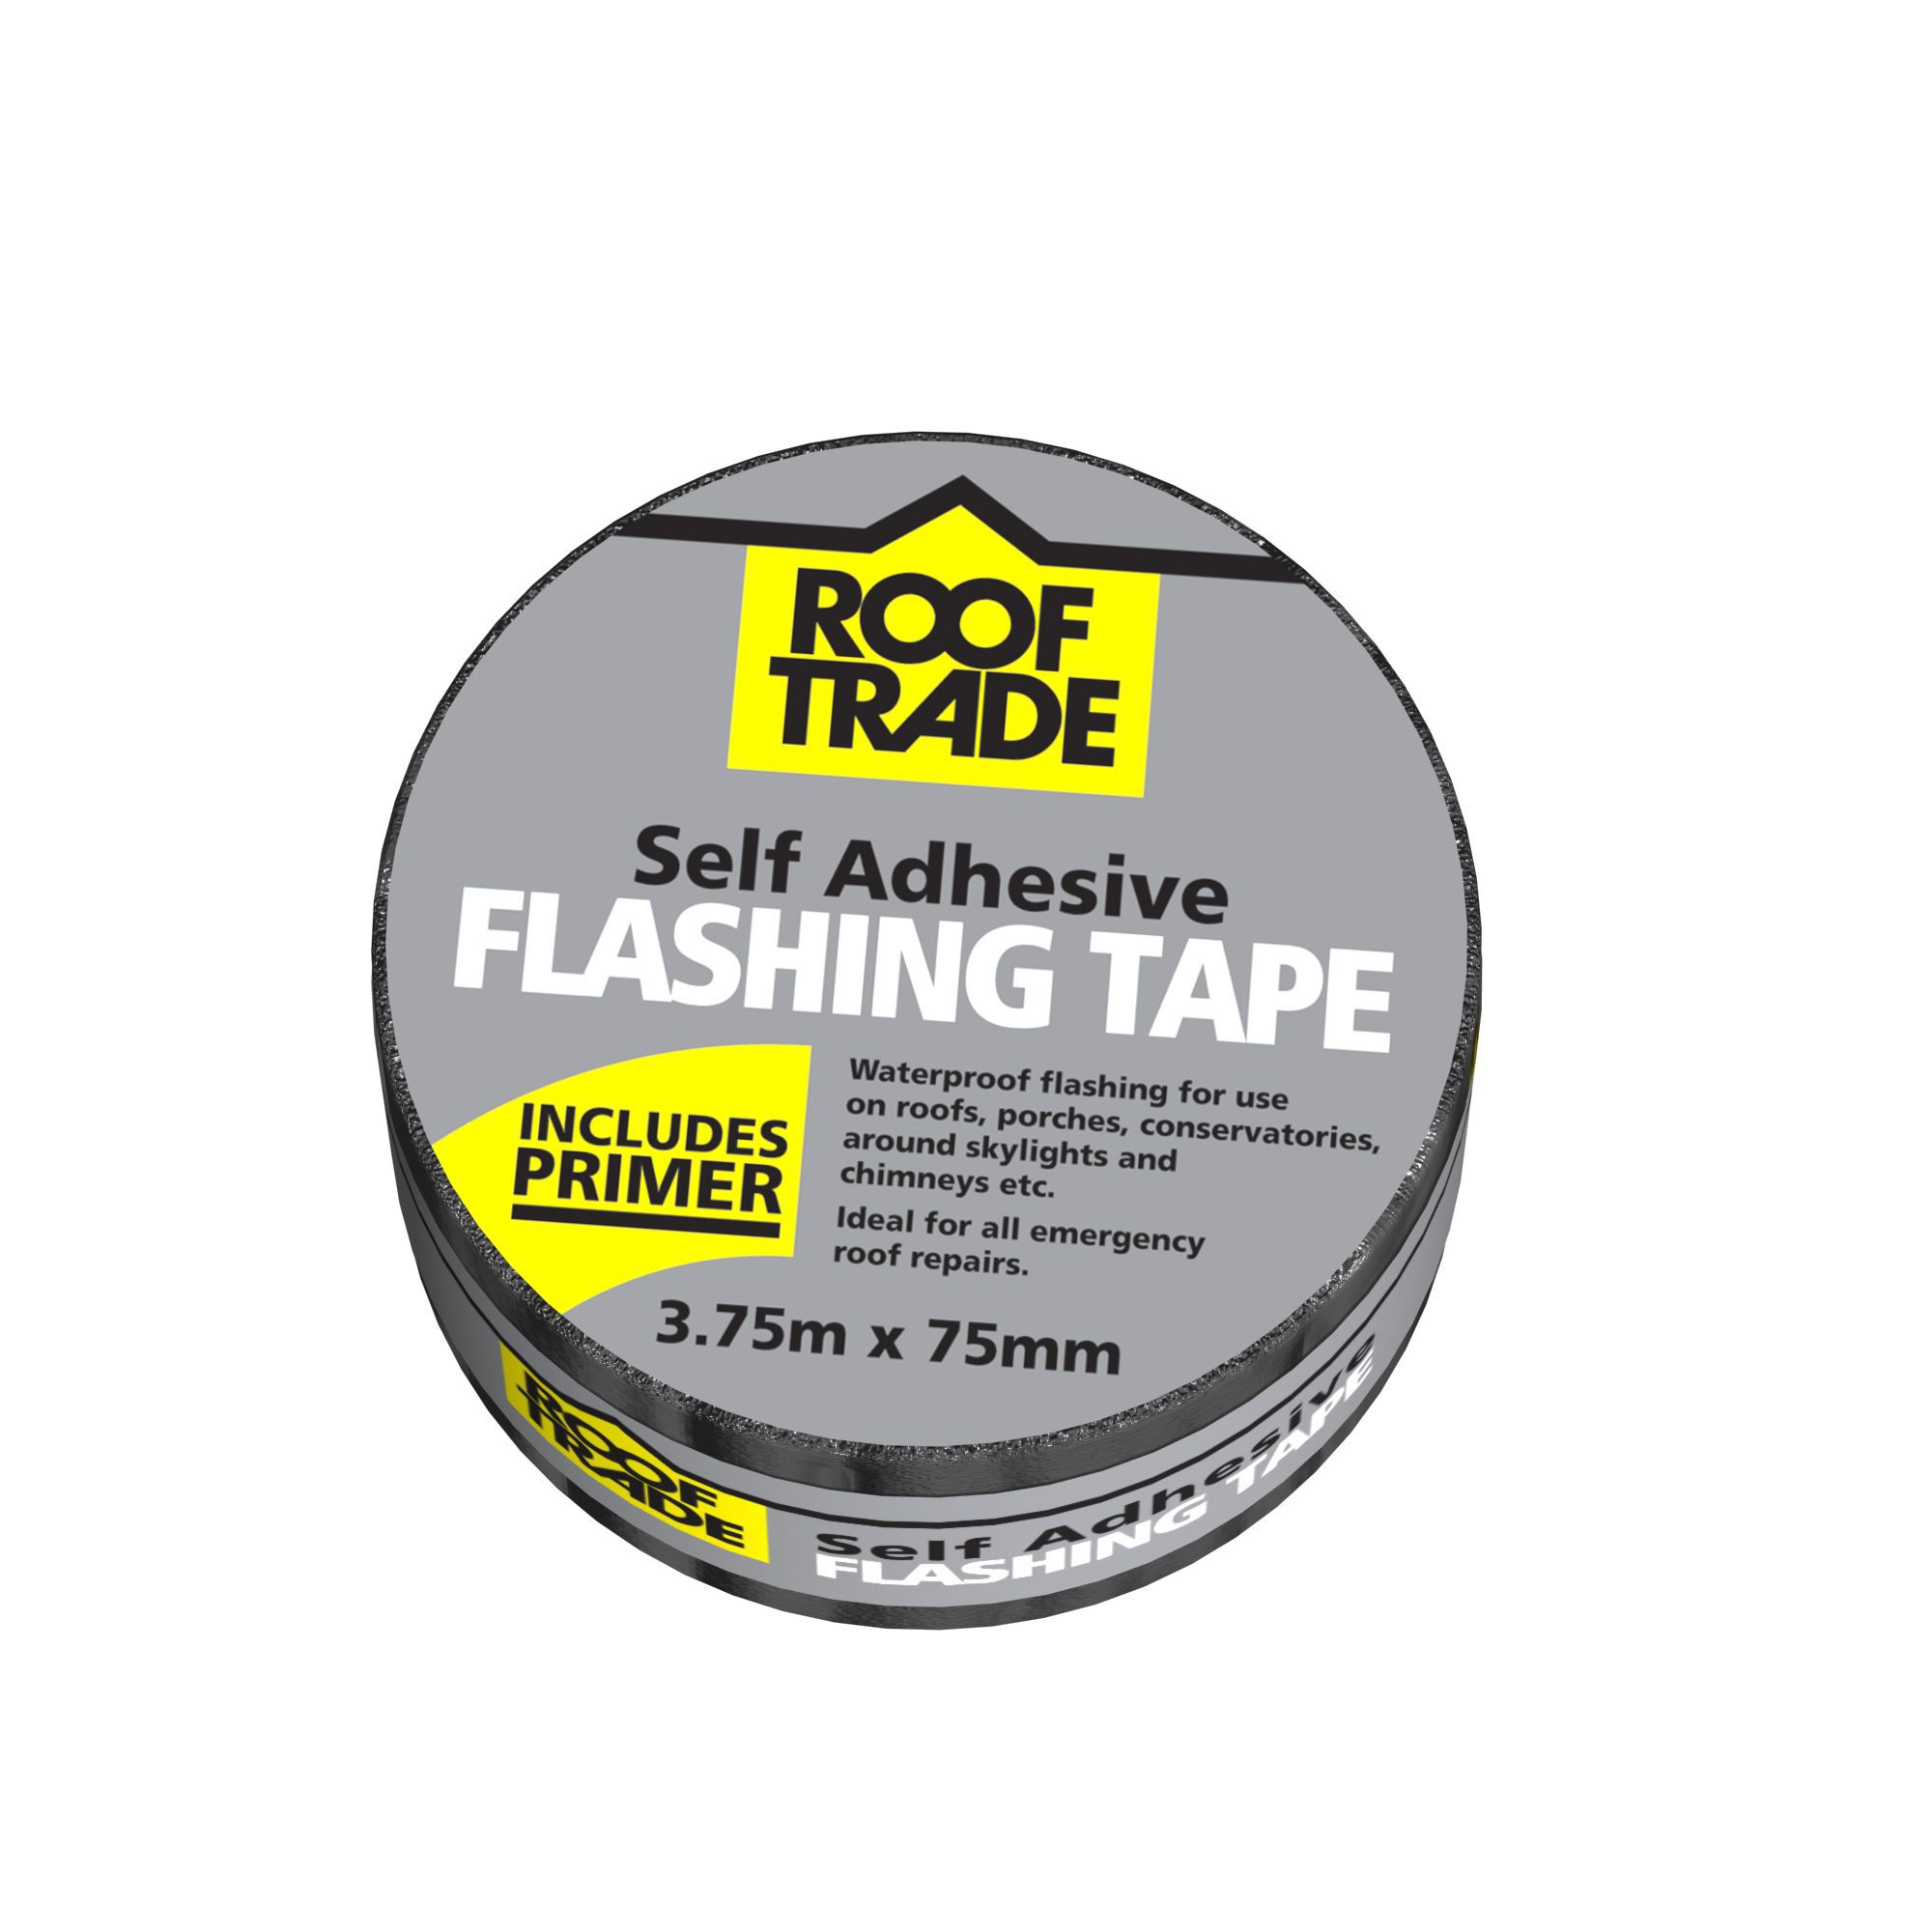 Evo-stik Rooftrade Grey Flashing Tape (l)3.75m (w)75mm